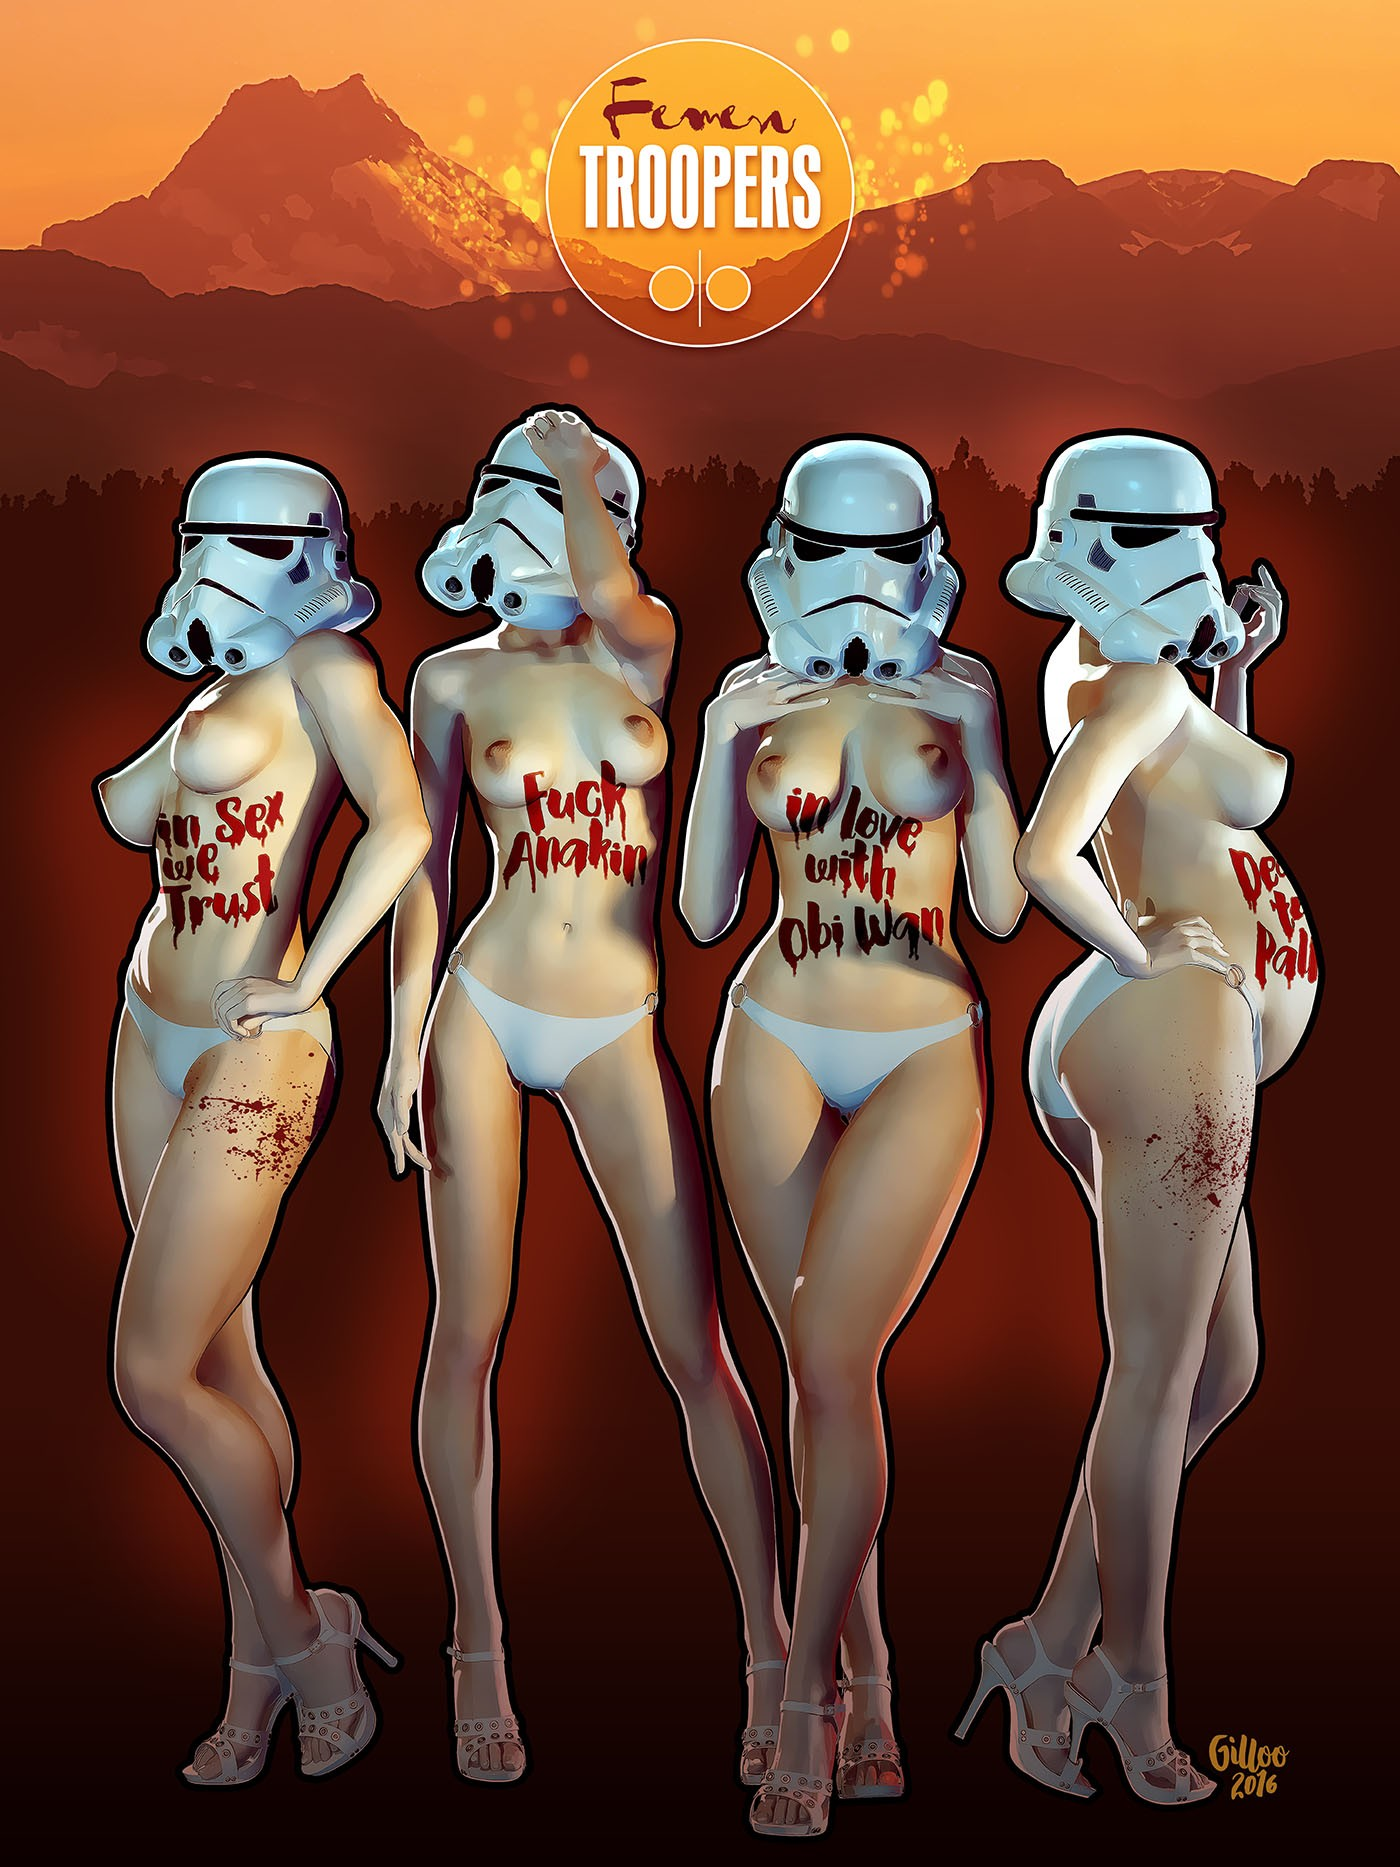 Femen Troopers in action